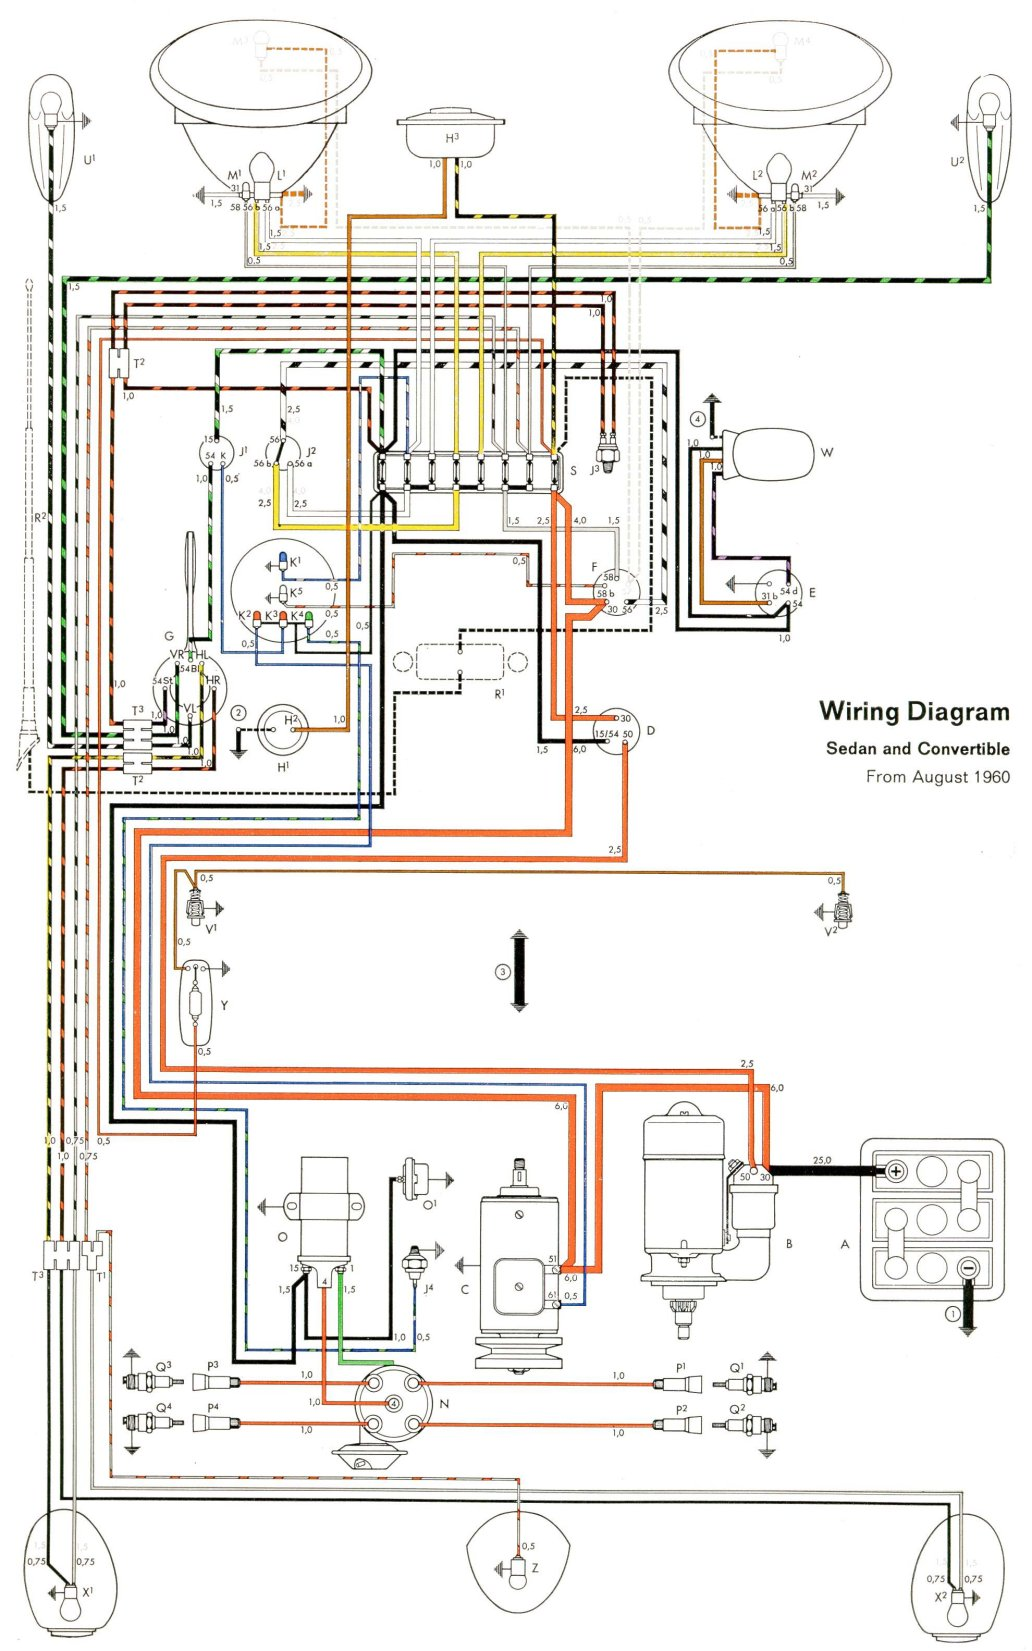 vw t wiring schematic vw image wiring diagram vw wiring diagrams vw wiring diagrams on vw t25 wiring schematic